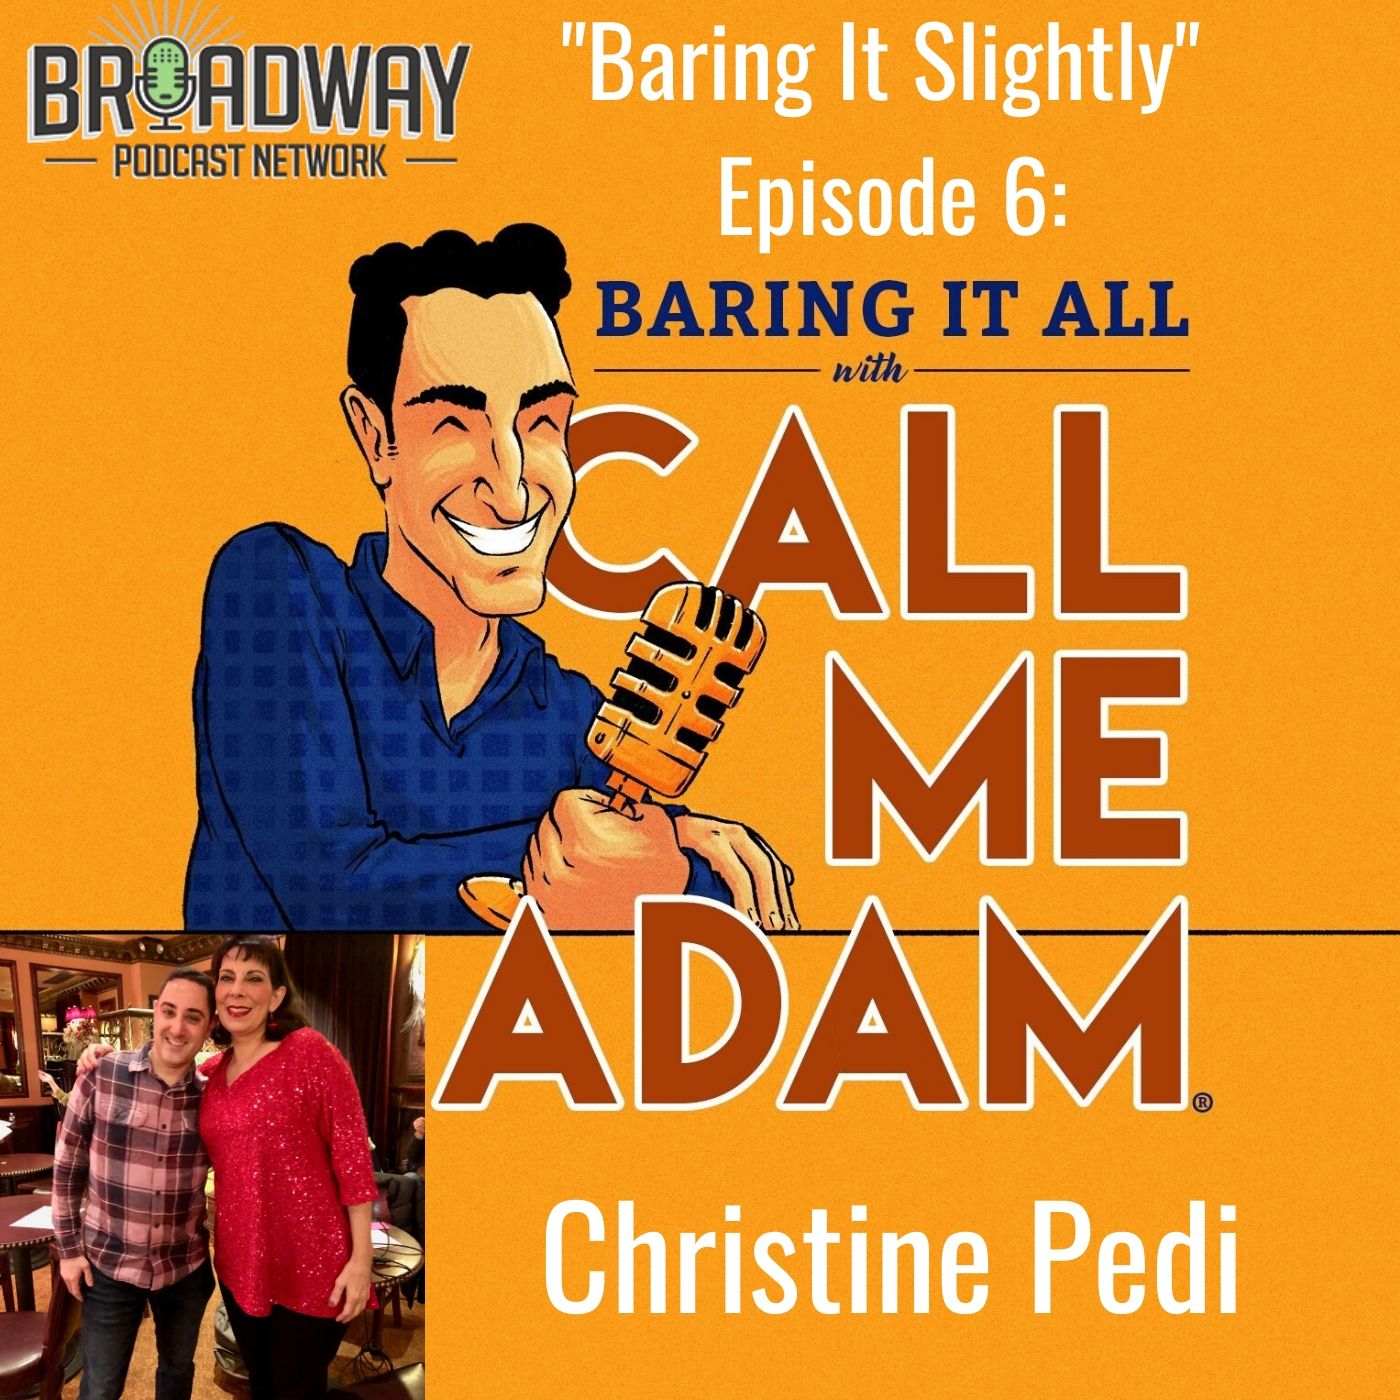 Baring It All With Call Me Adam Baring It Slighty Ep 6 Christine Pedi